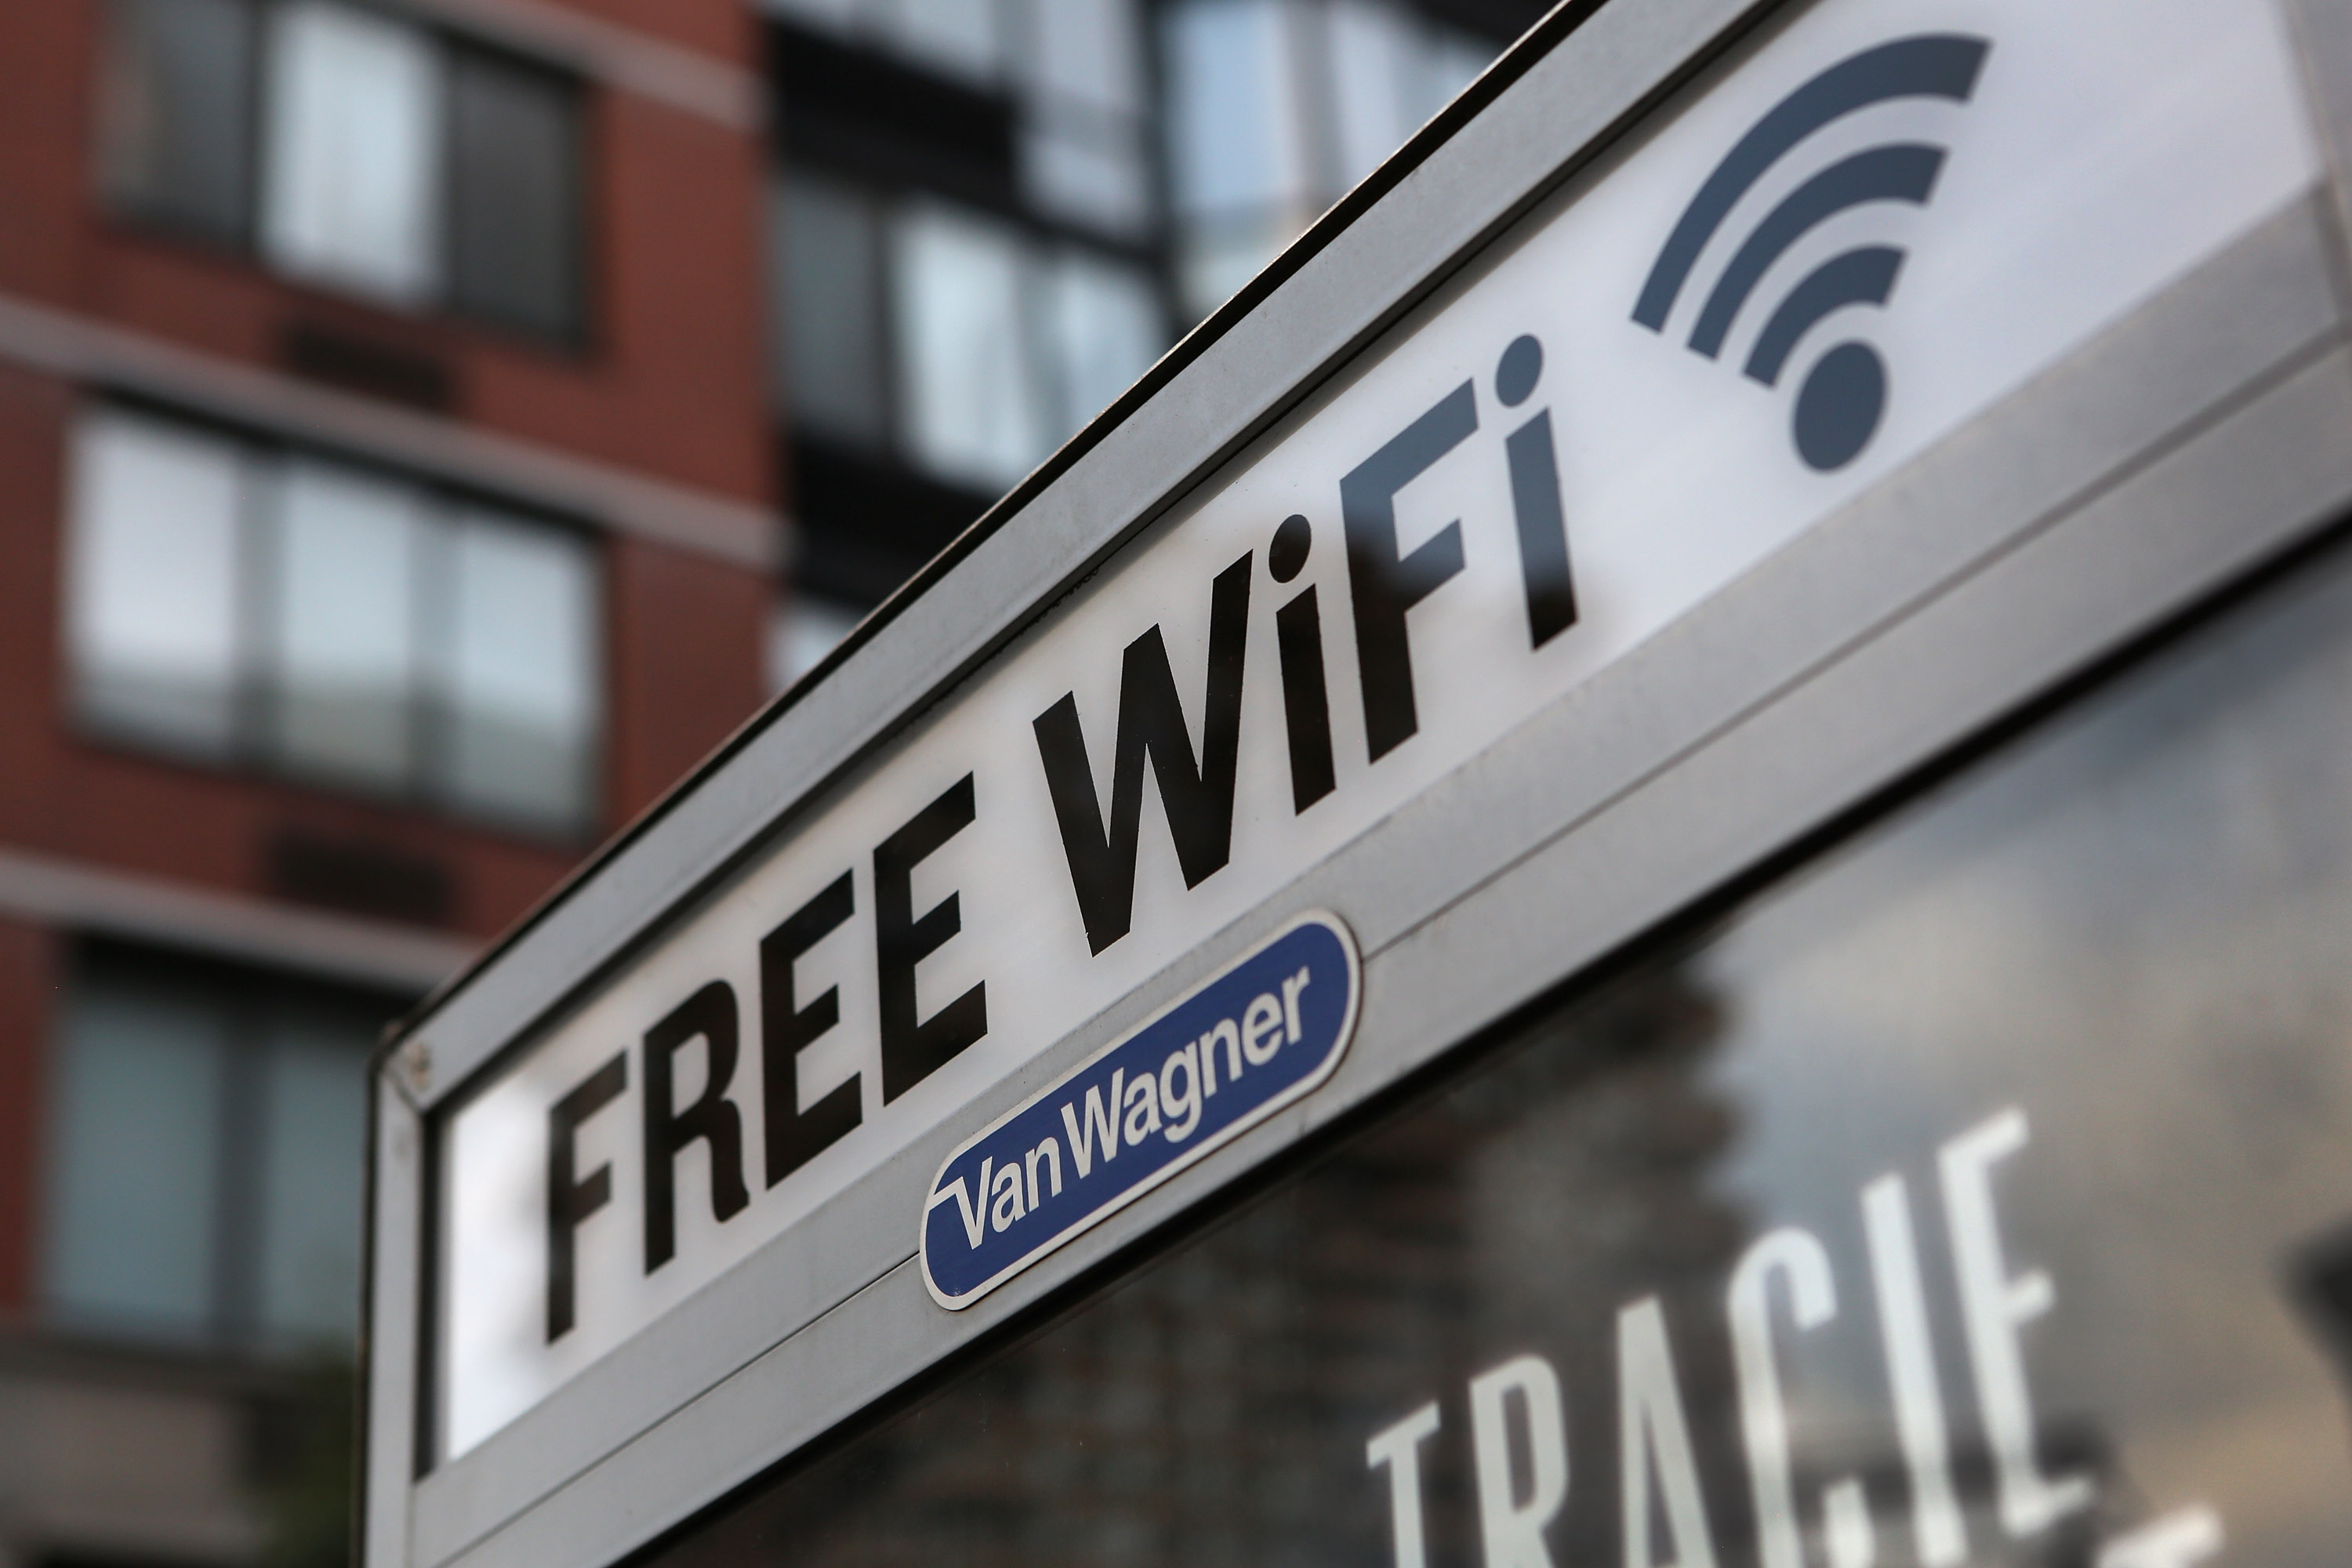 5 security risks of using public Wi-Fi - Dignited